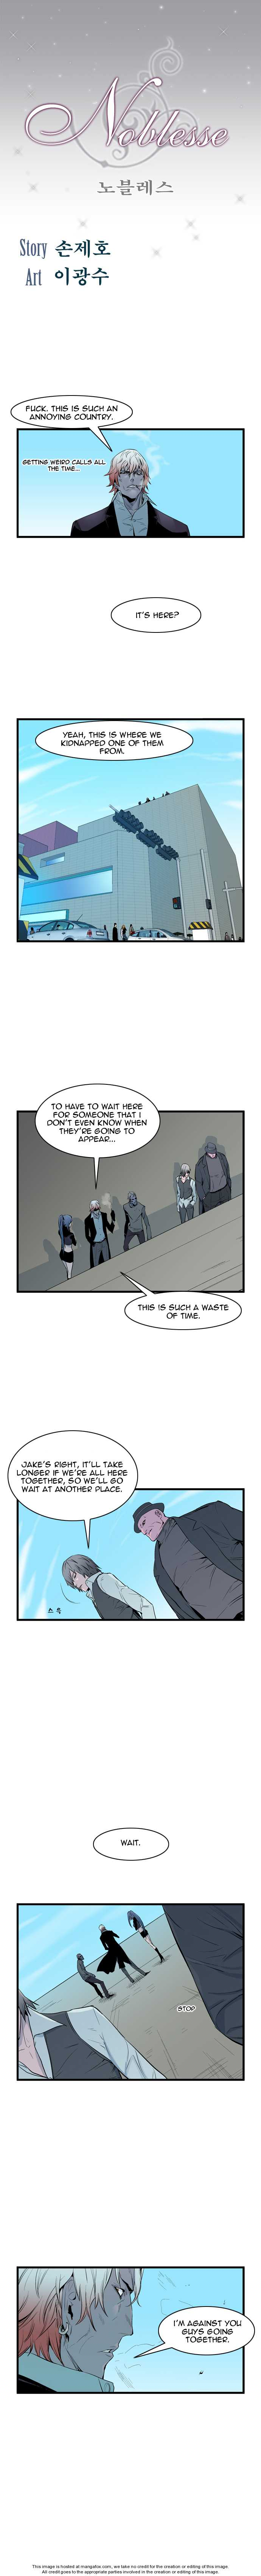 Noblesse 64 Page 1